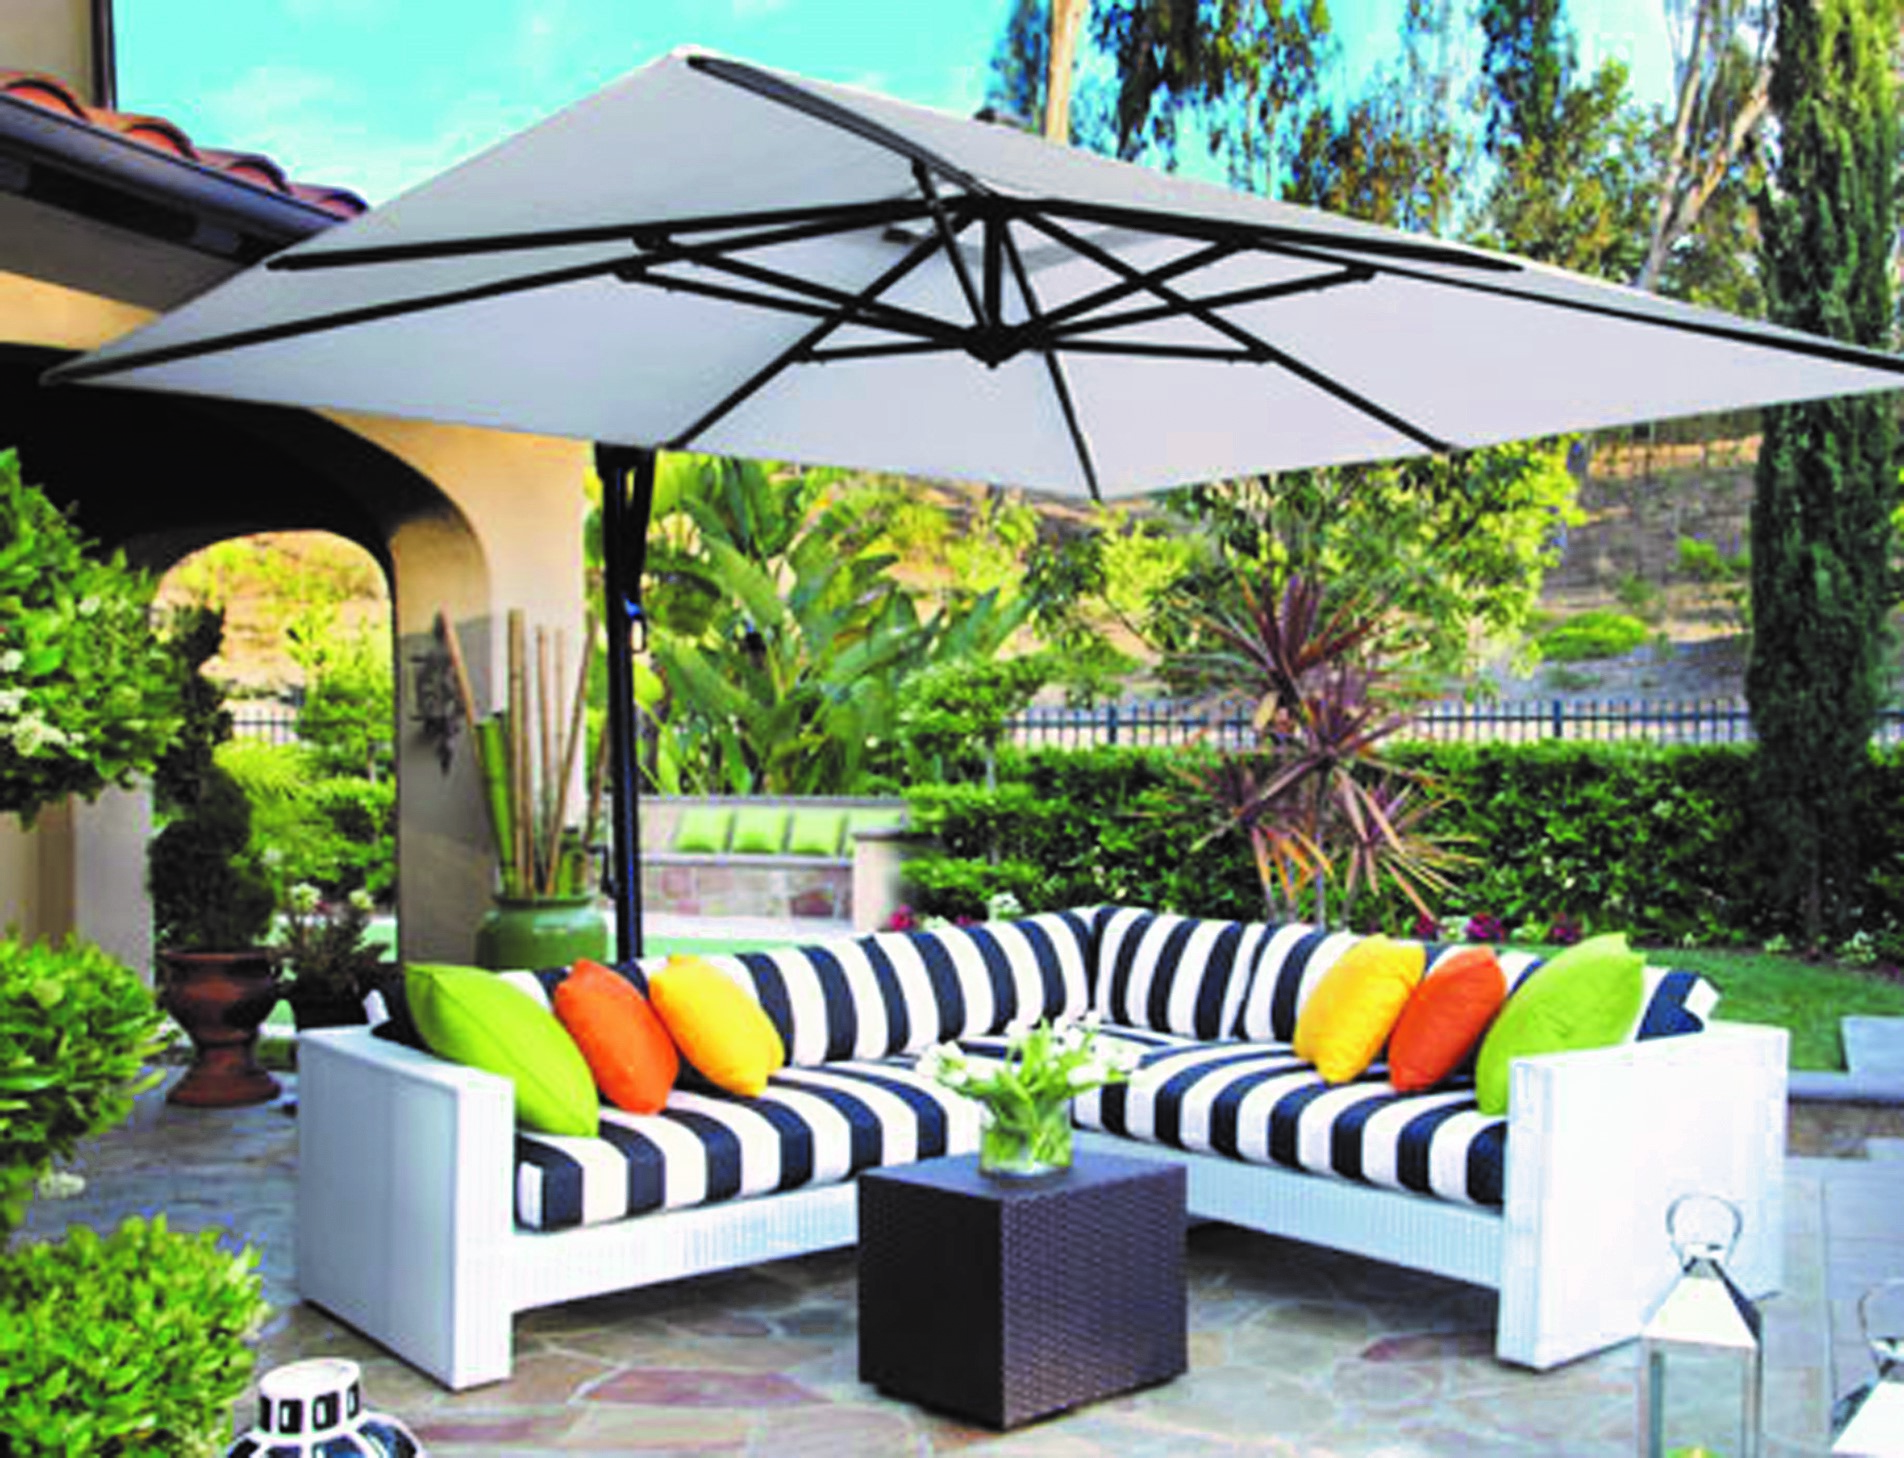 patio umbrella - white patio umbrella over white patio furniture